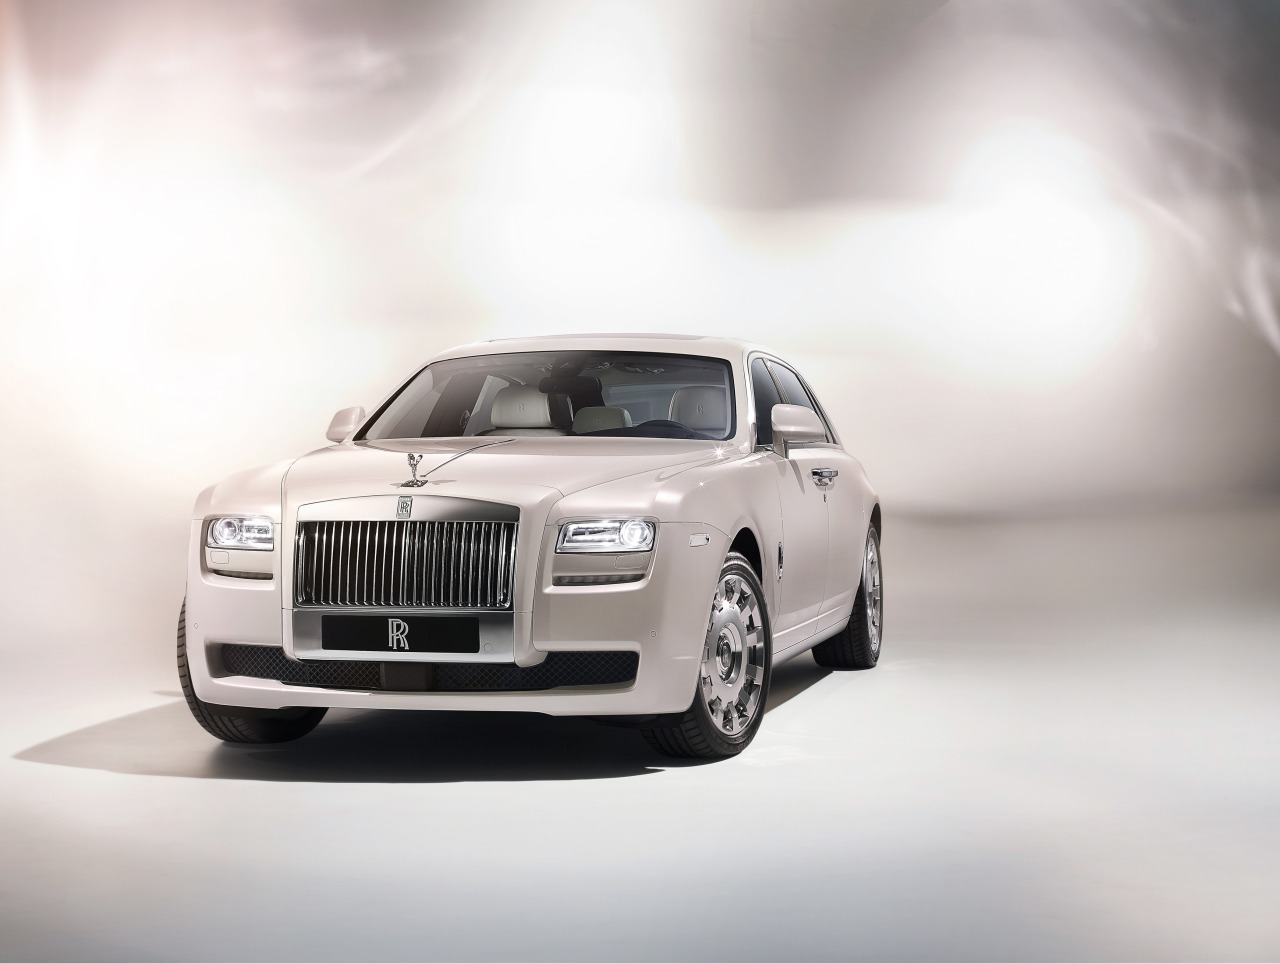 Rolls-Royce_Ghost_Six_Senses_Concept_01.jpg